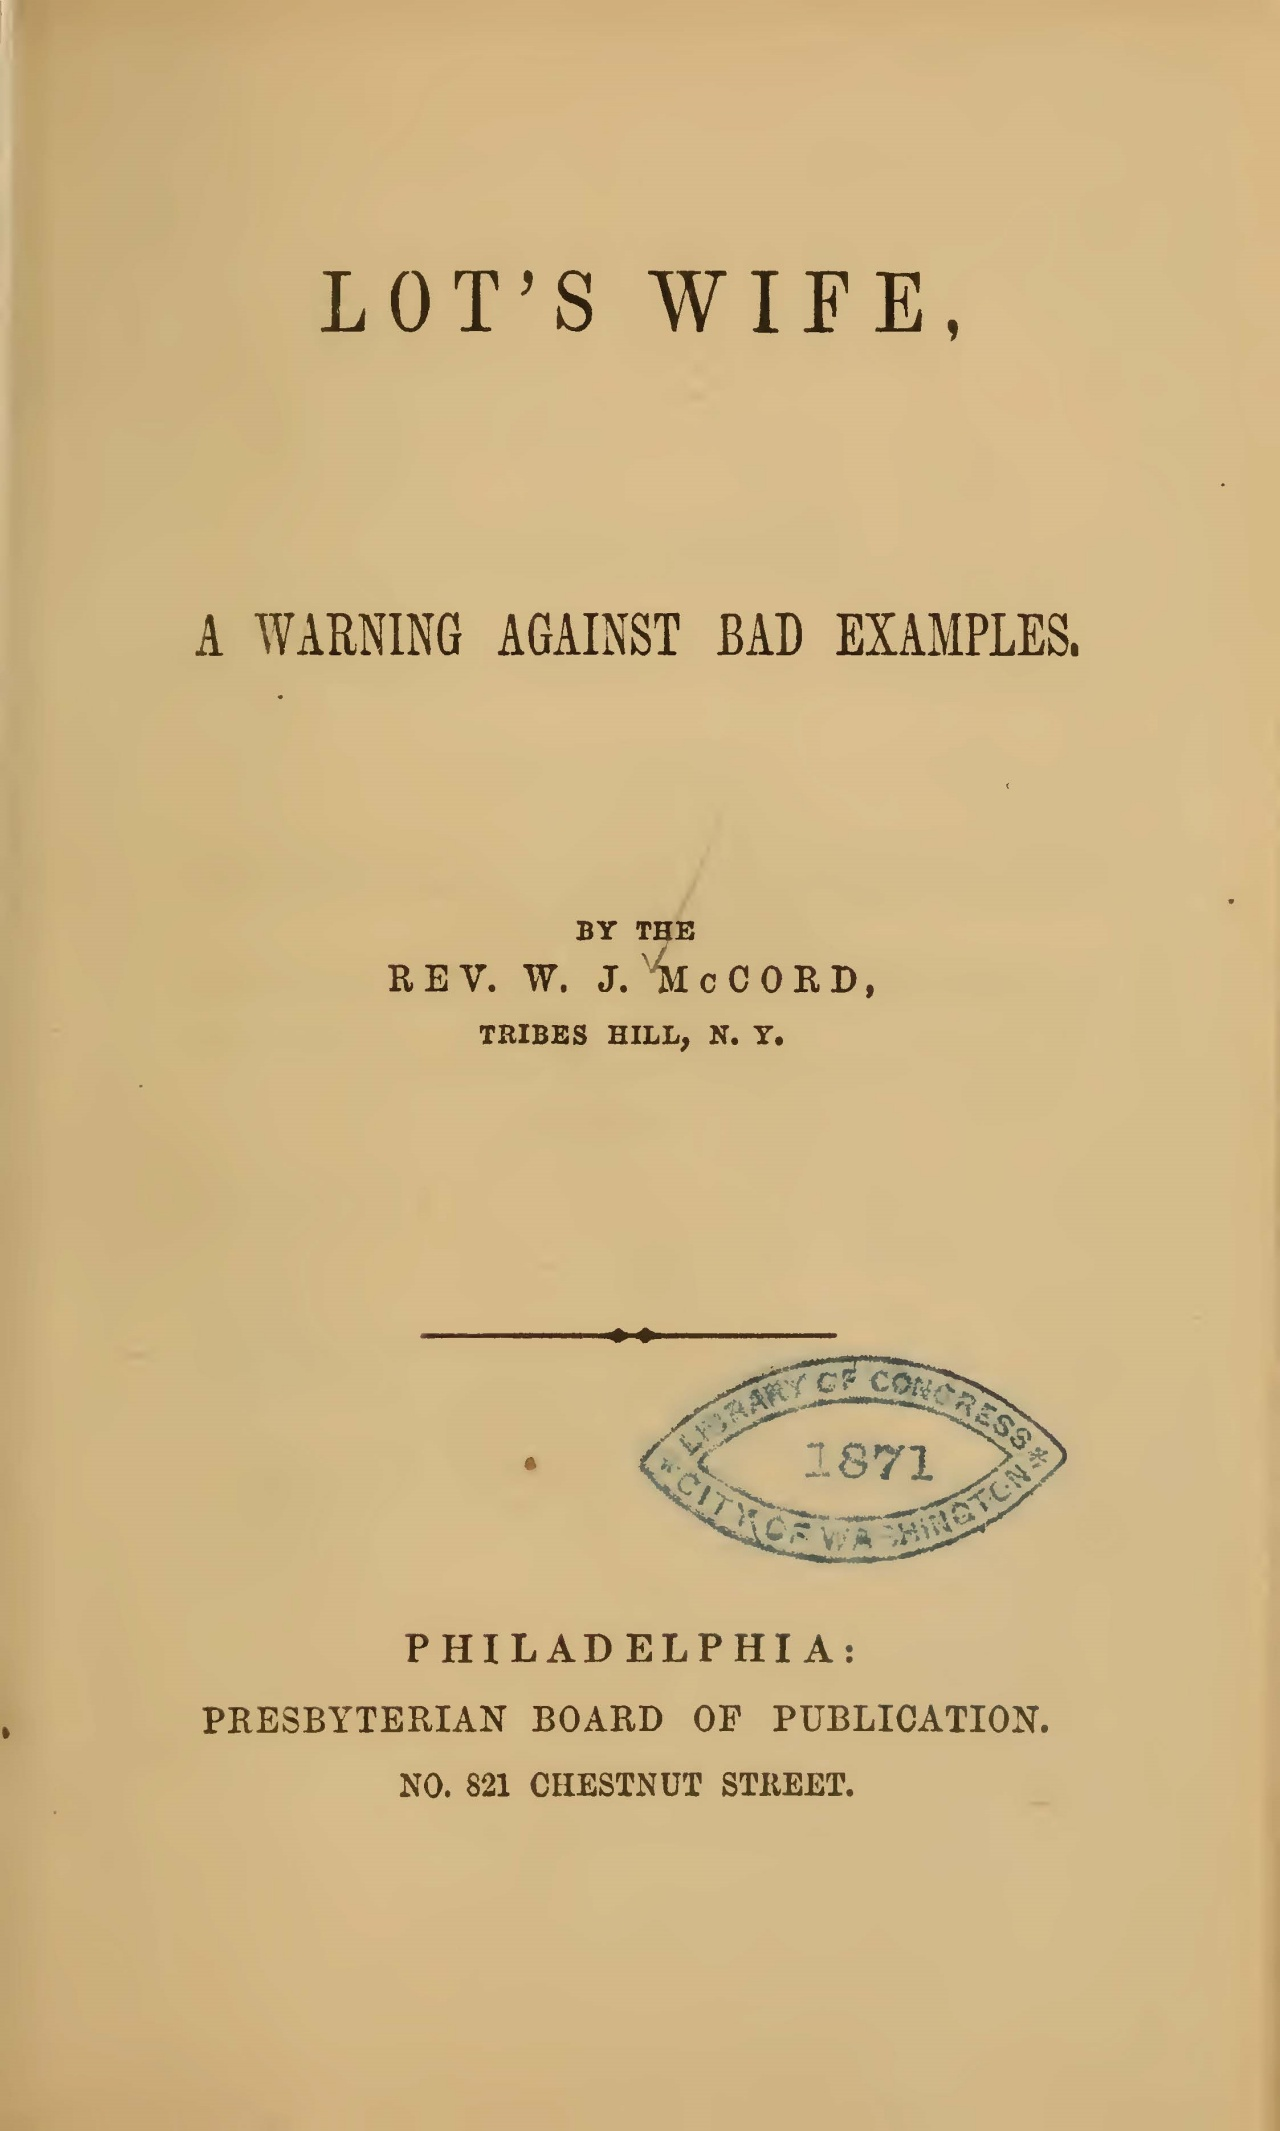 McCord, William J., Lot's Wife Title Page.jpg